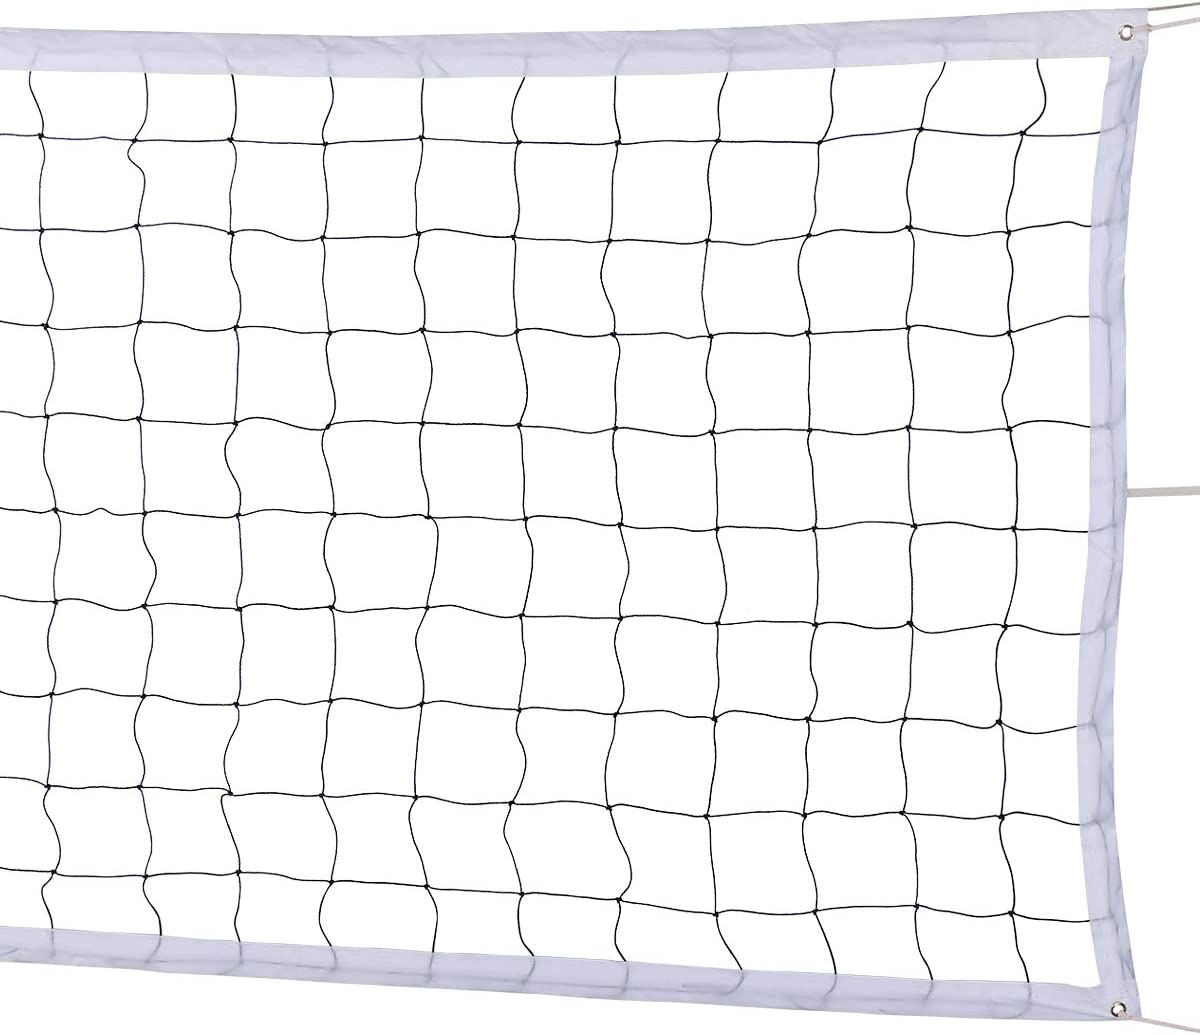 Amazon Com Ylovan Volleyball Net For Pool Beach Park Backyard Outdoor Or Indoor Sports Portable Volleyball Replacement Net 32 Ft X 3 Ft Poles Not Included Sports Outdoors